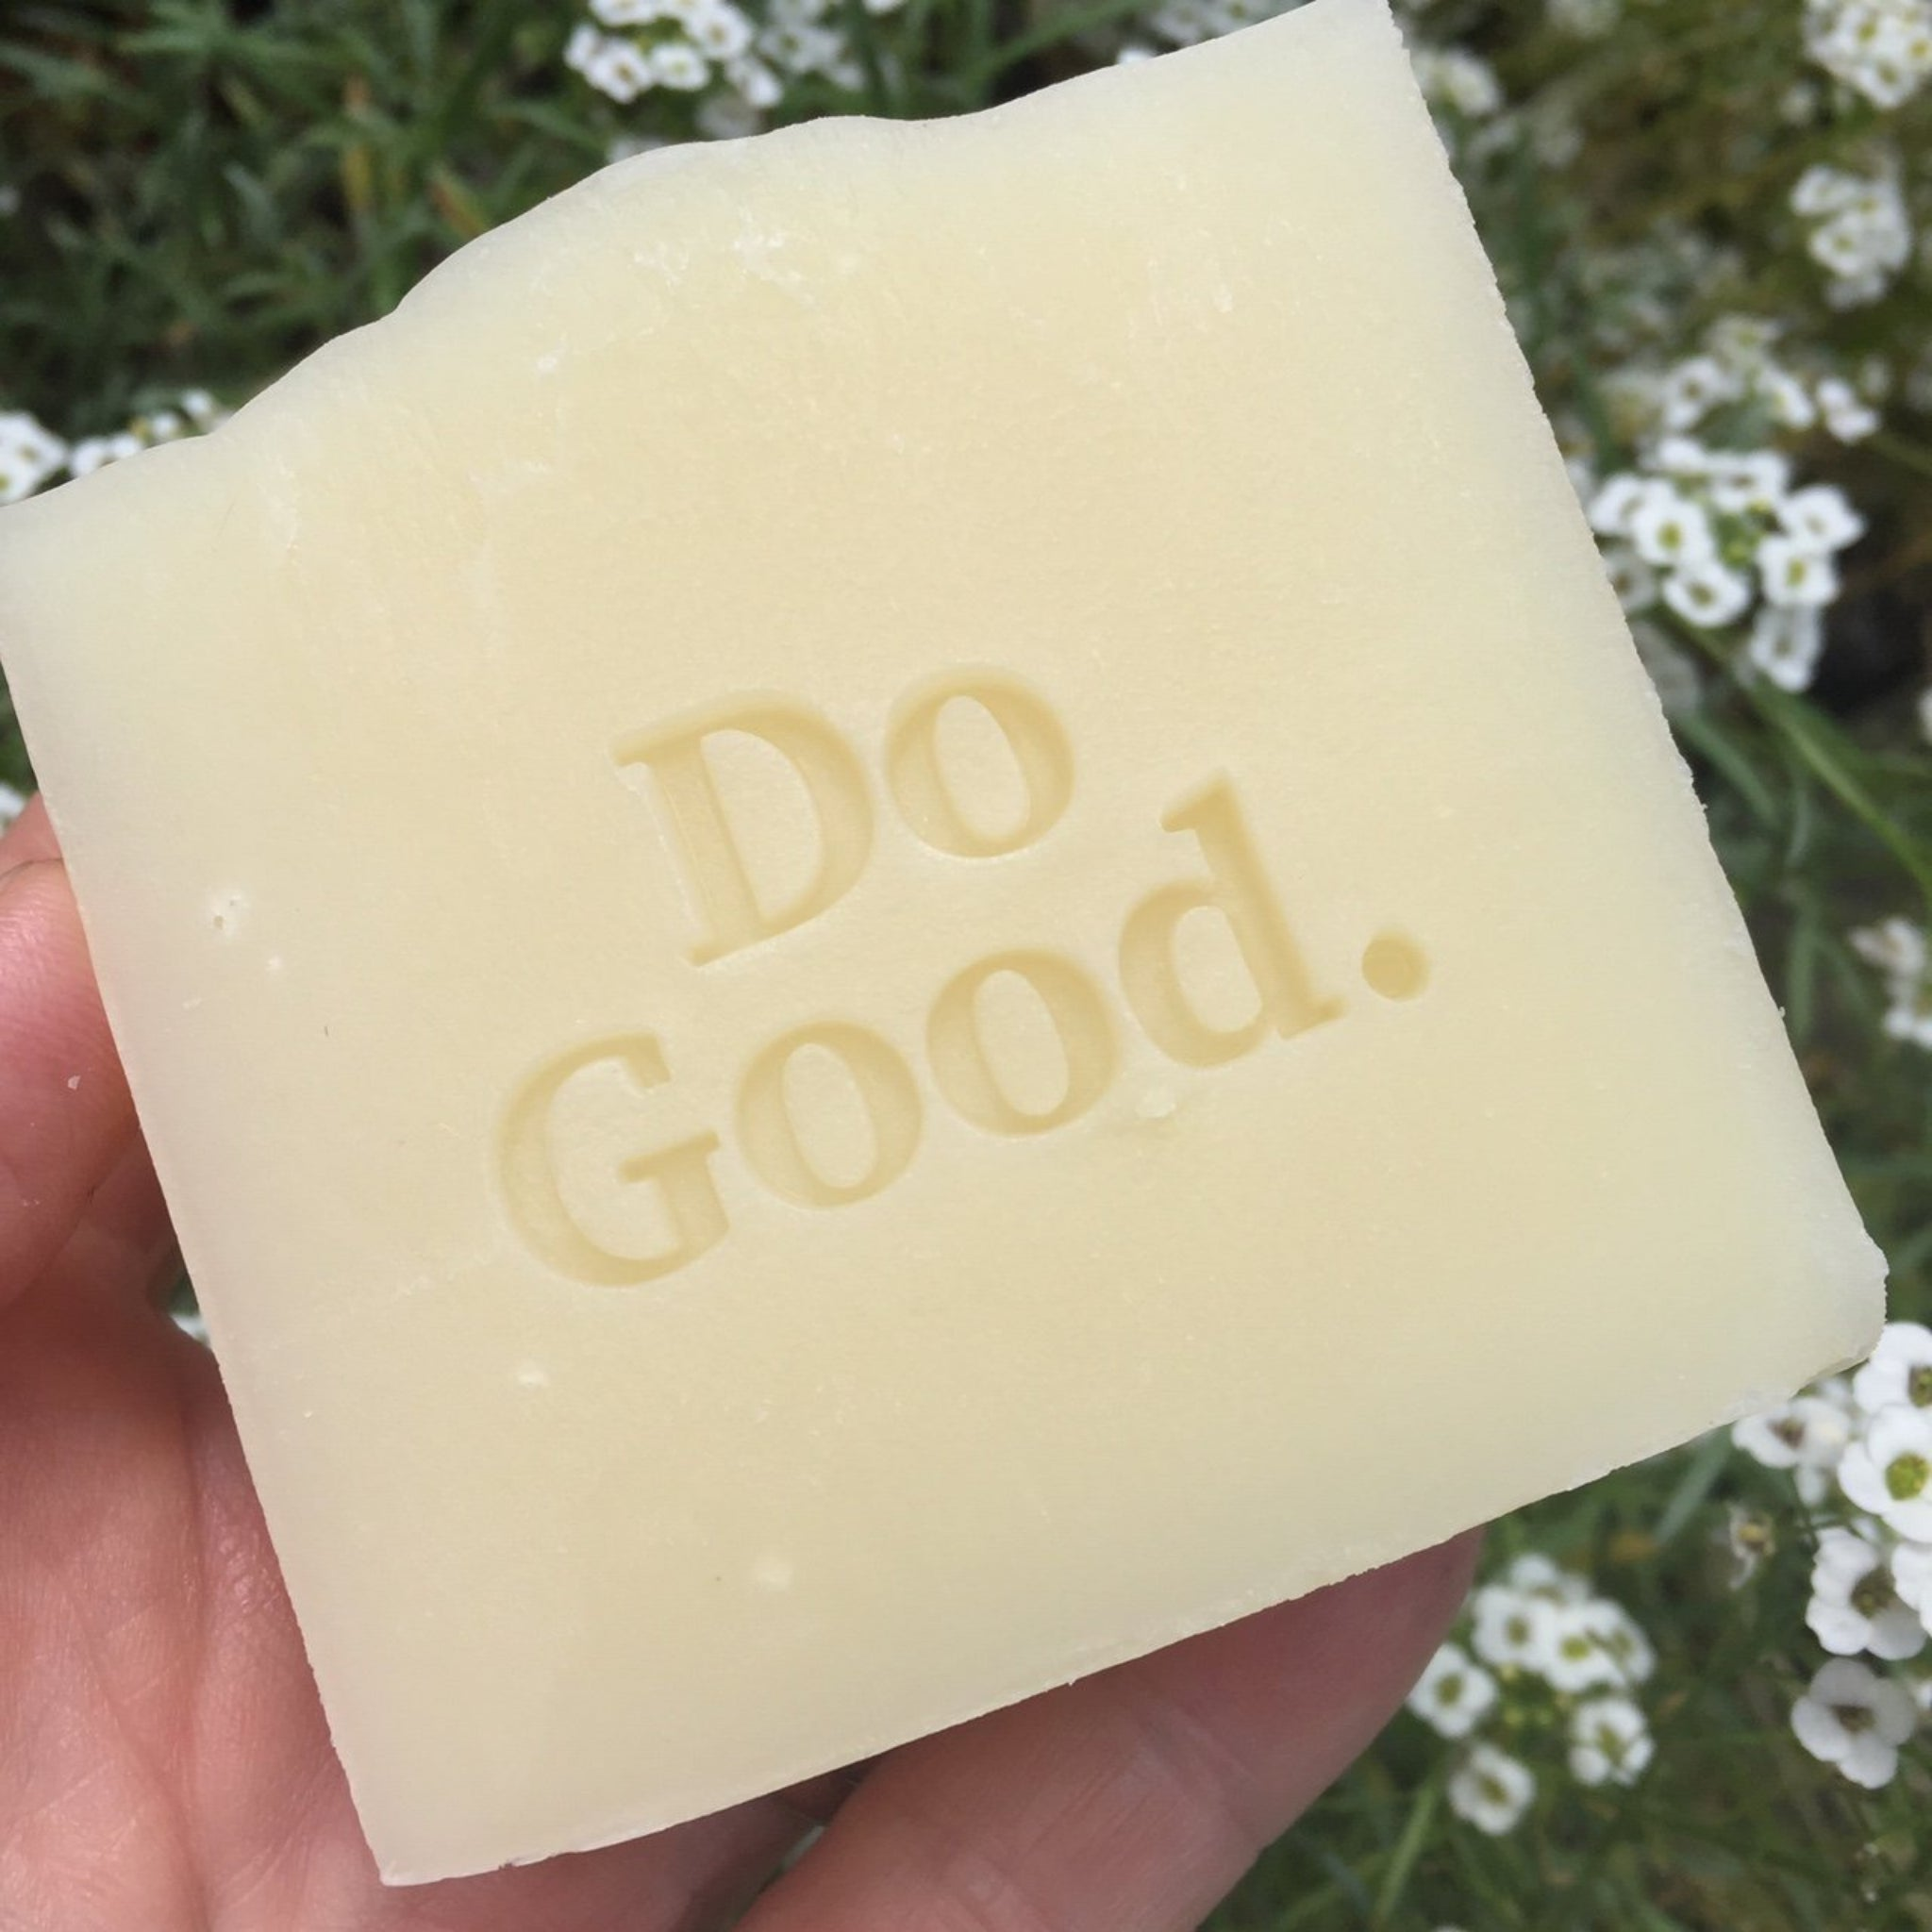 Heady Le Bar Shampoo Bar - Do Good Soaps and Suds